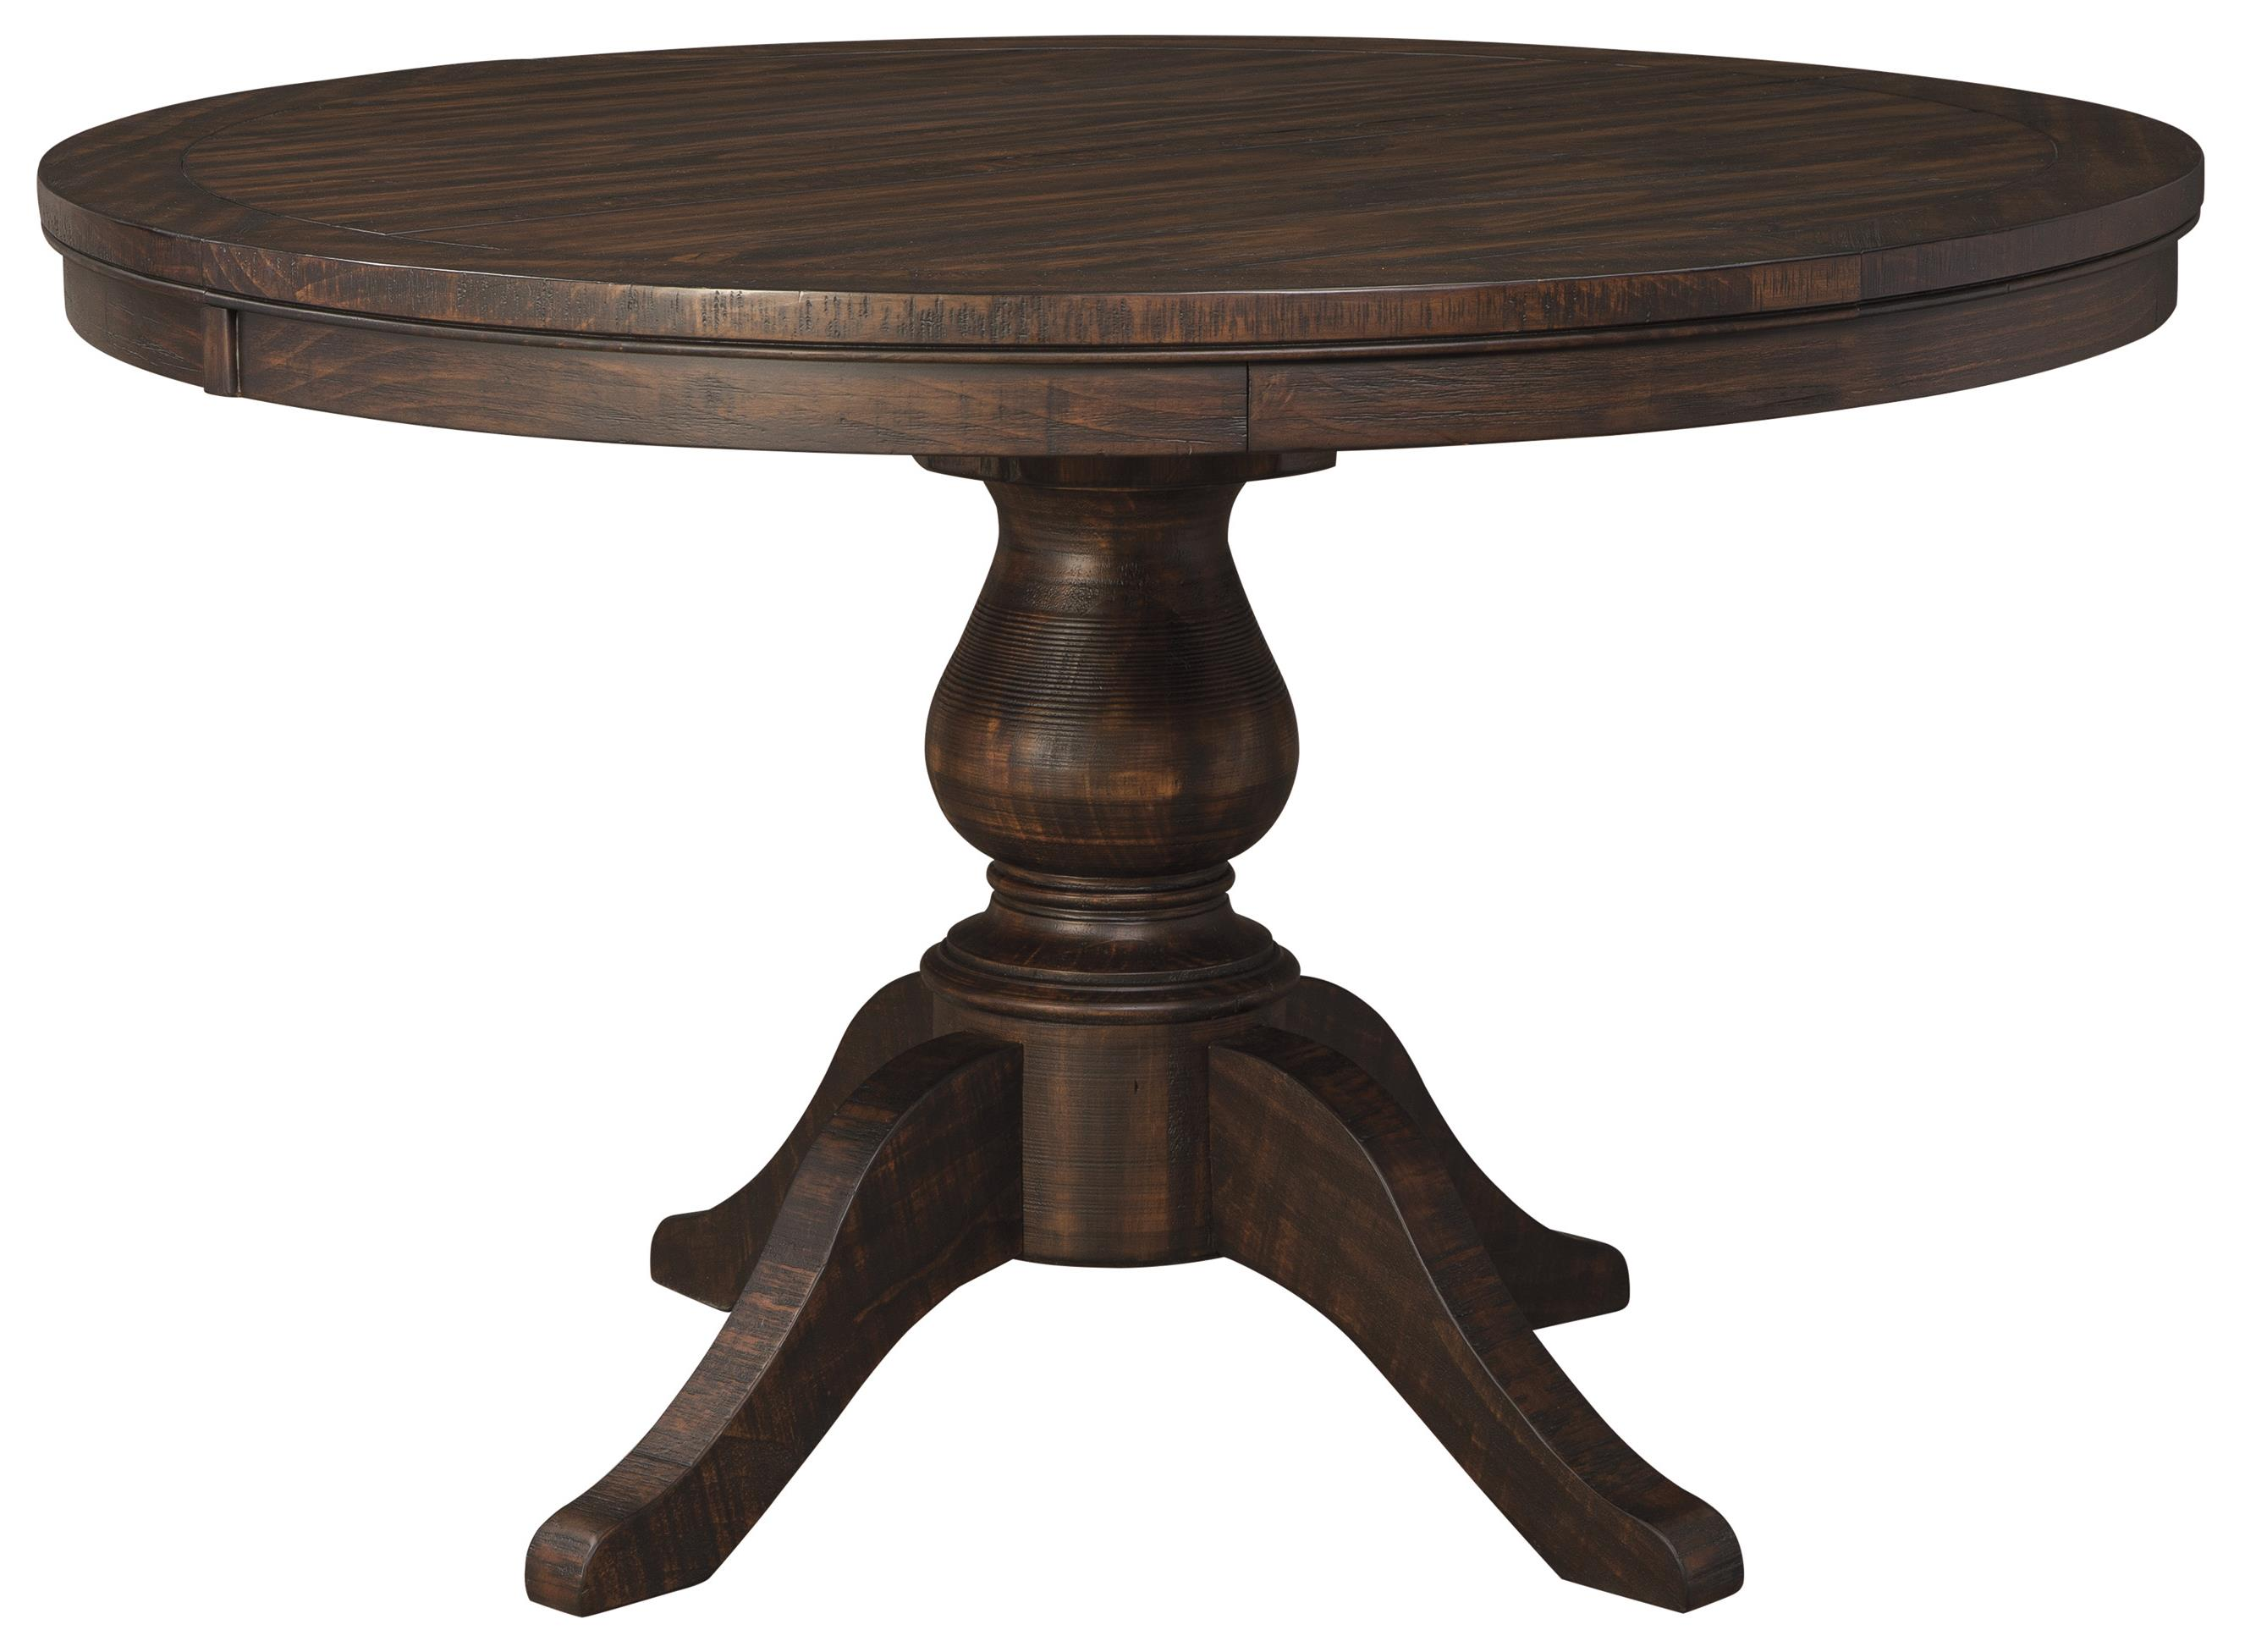 Solid wood pine round dining room pedestal extension table for Solid wood round dining room table